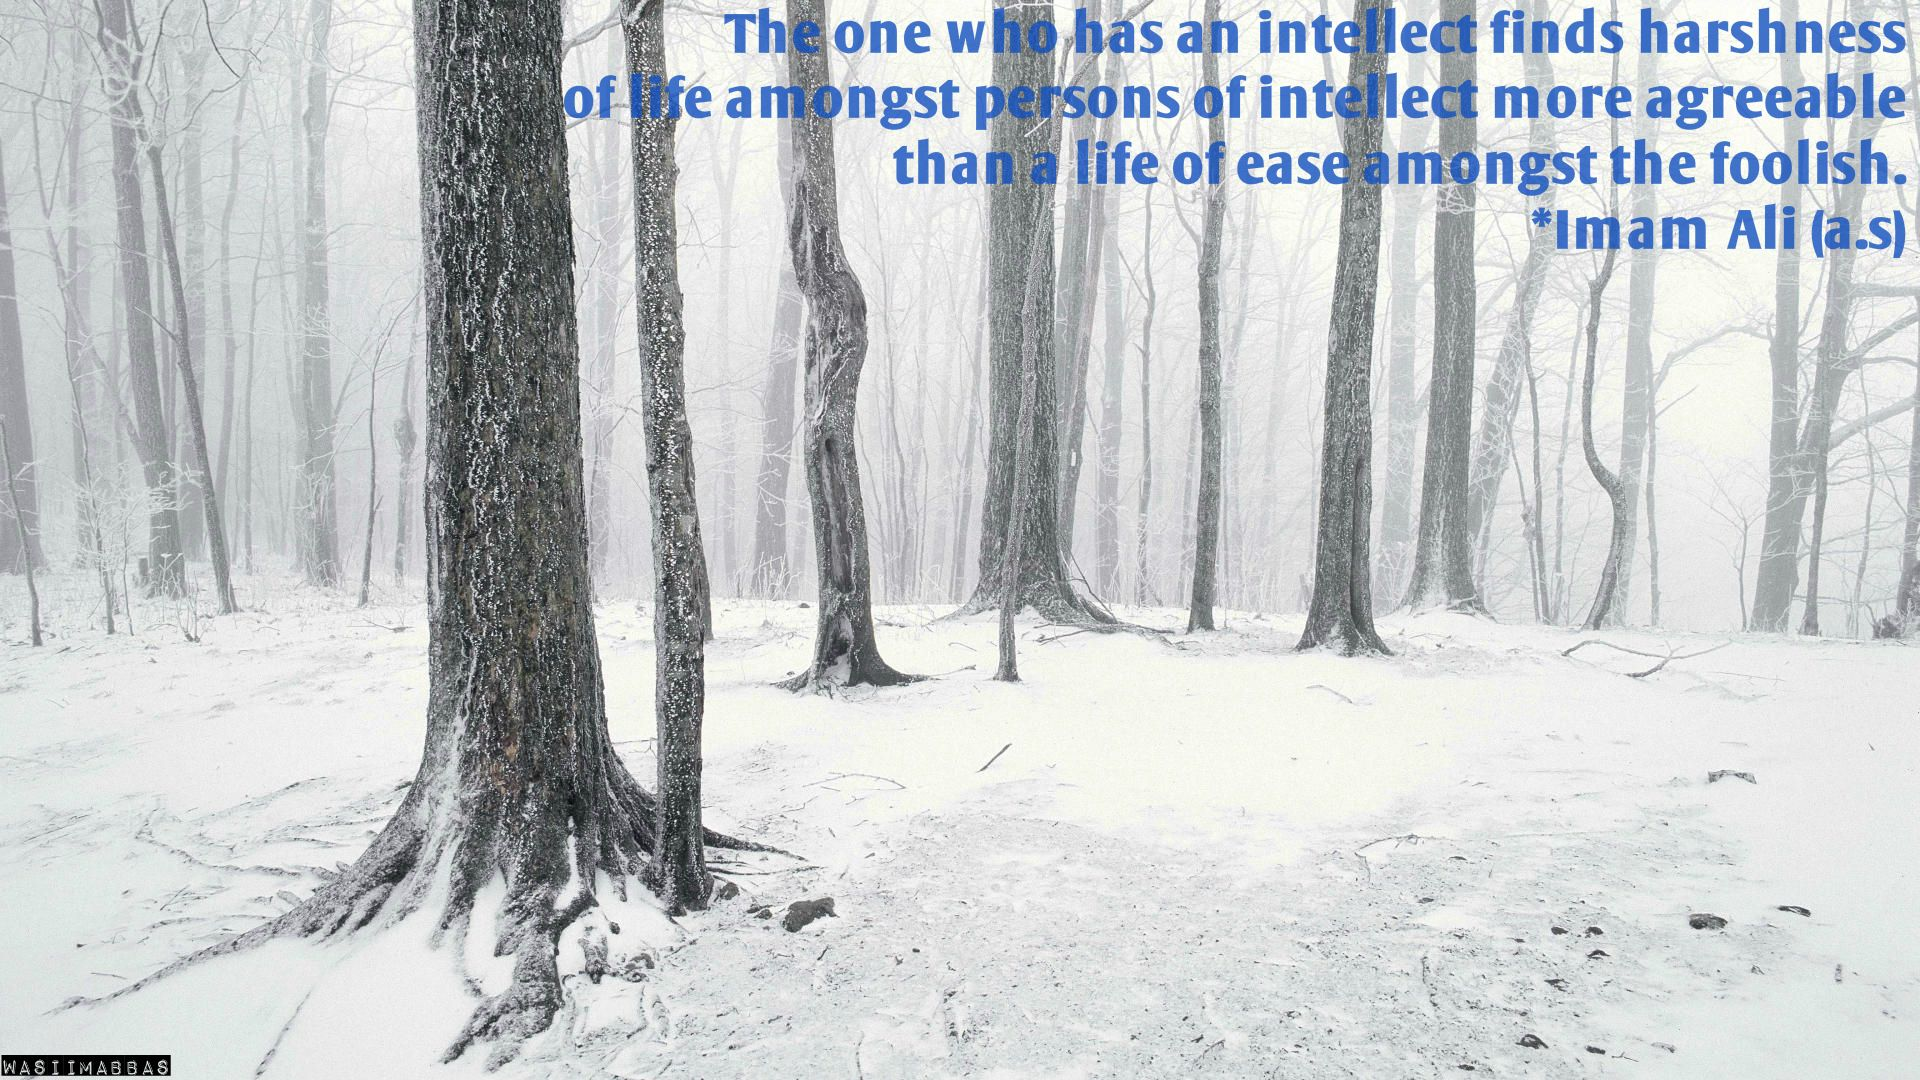 The one who has an intellect finds harshness of life amongst persons of intellect more agreeable than a life of ease amongst the foolish.